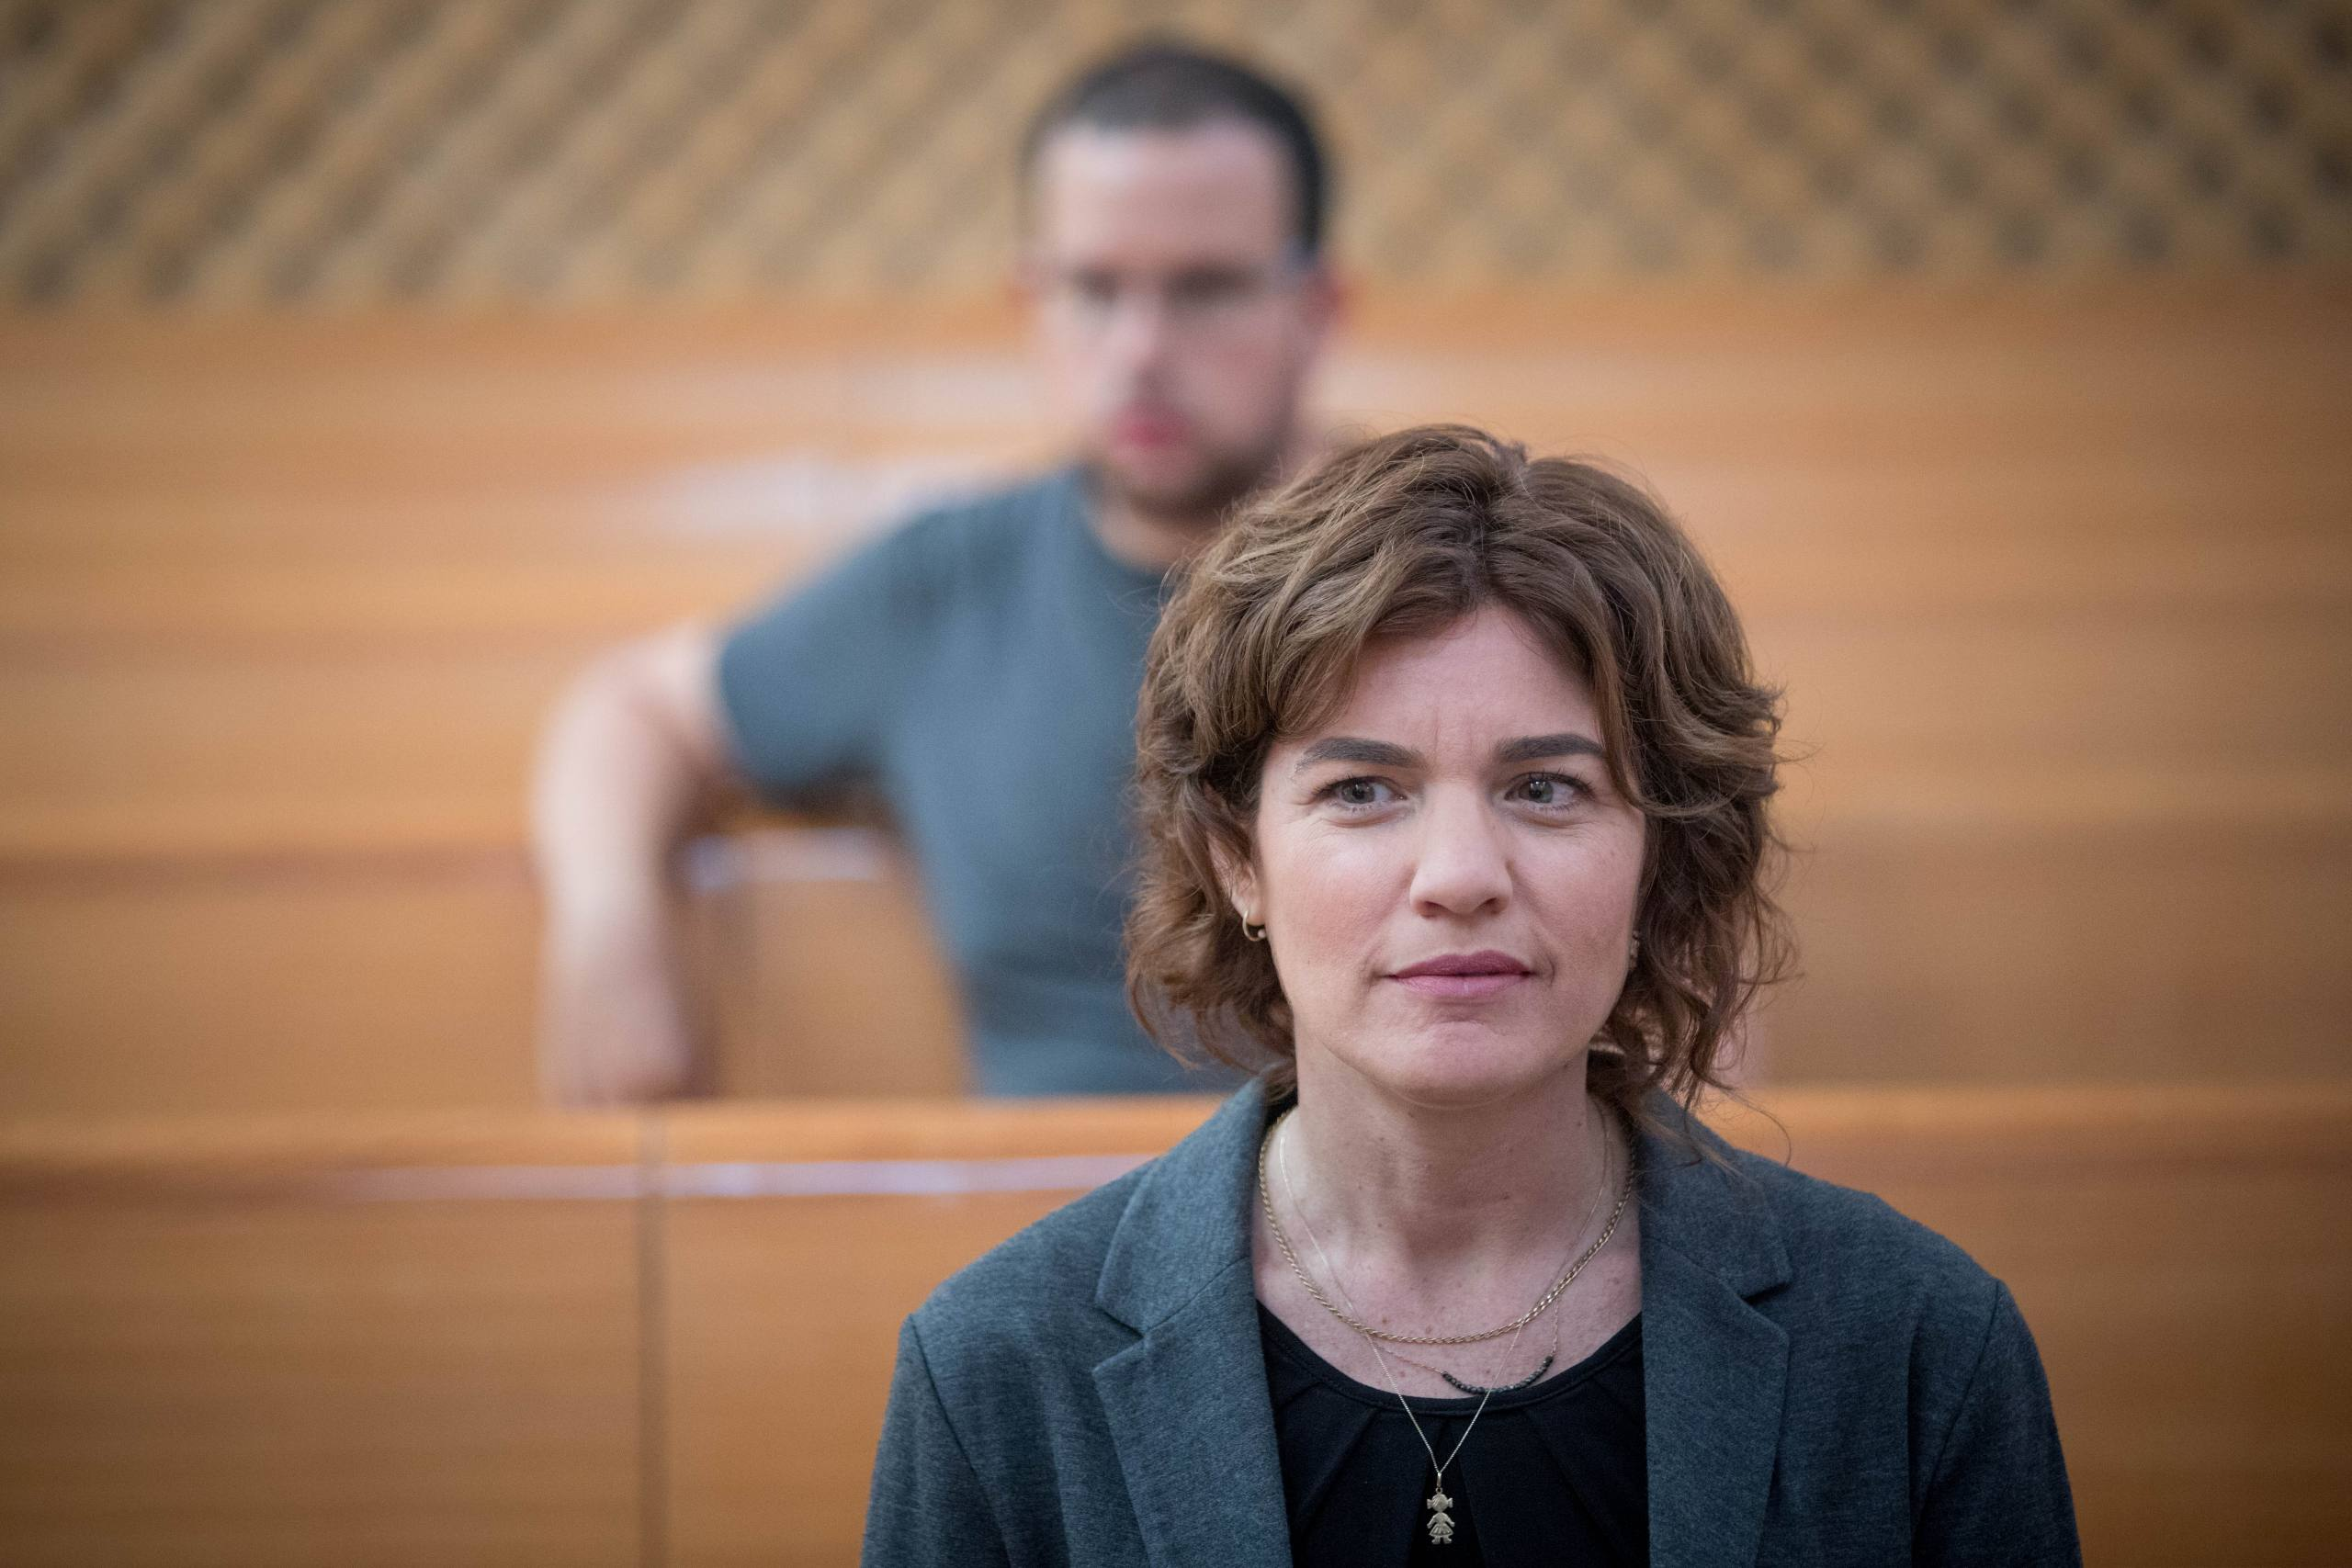 Meretz parliament member Tamar Zandberg arrives to the courtroom of the Supreme Court in Jerusalem before the start of a court hearing about public transportation in Shabat, September 11, 2017. Photo by Yonatan Sindel/Flash90 *** Local Caption *** תחבורה ציבורית תחבורה ציבורית בית משפט עליון הגשת עתירה תמר זנדברג